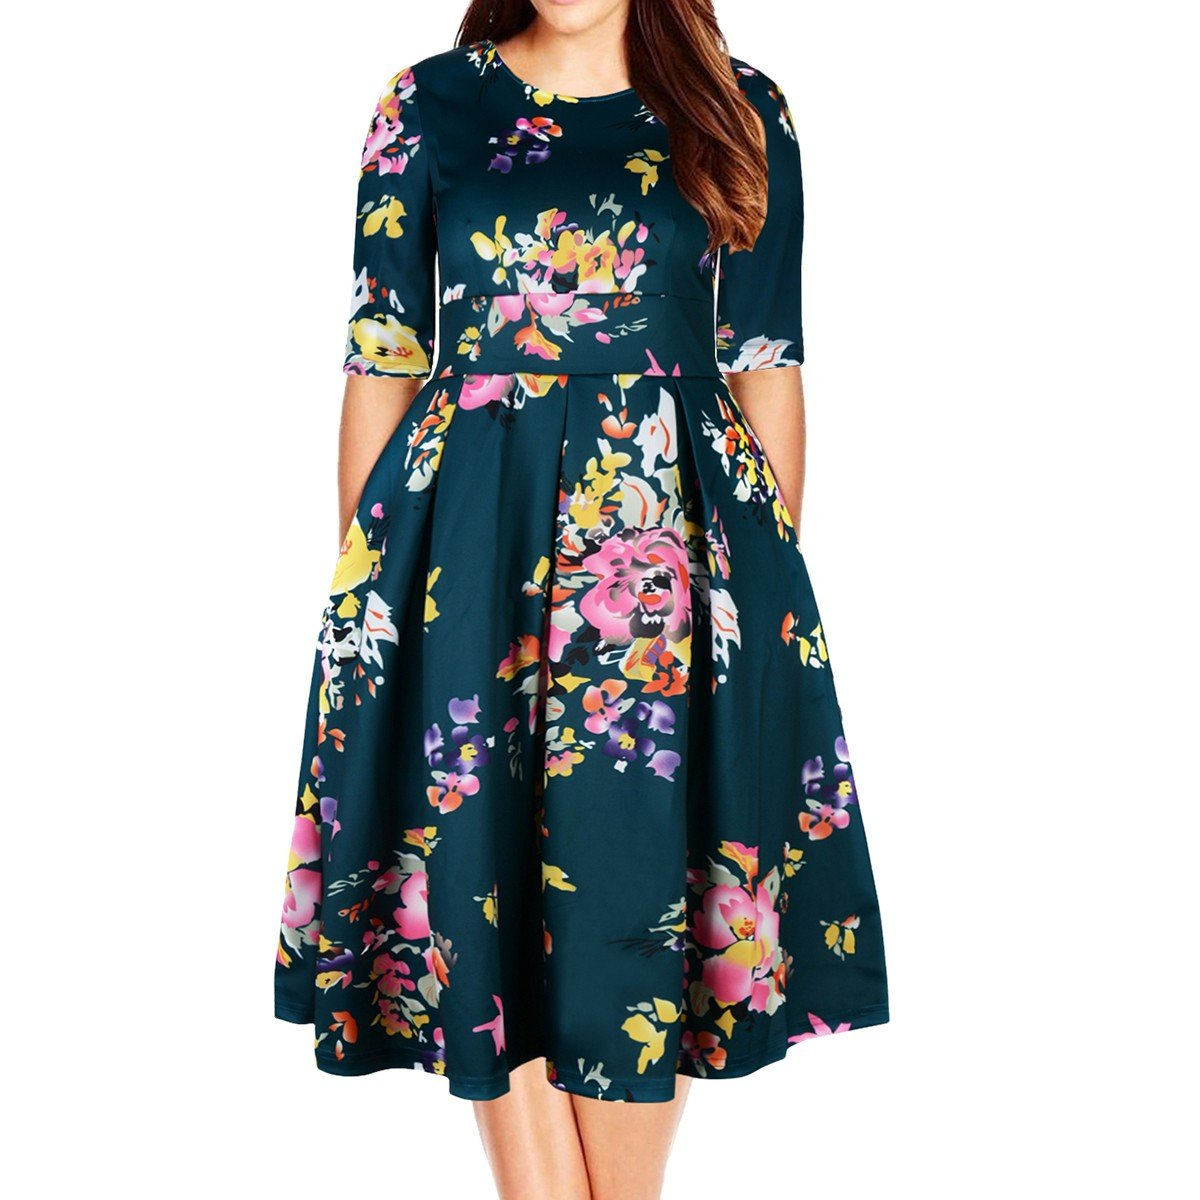 Samtree Women's Plus Size Floral 3/4 Sleeve Backless Cocktail Party Swing Dress(UK 22(US 18 Plus),Green)